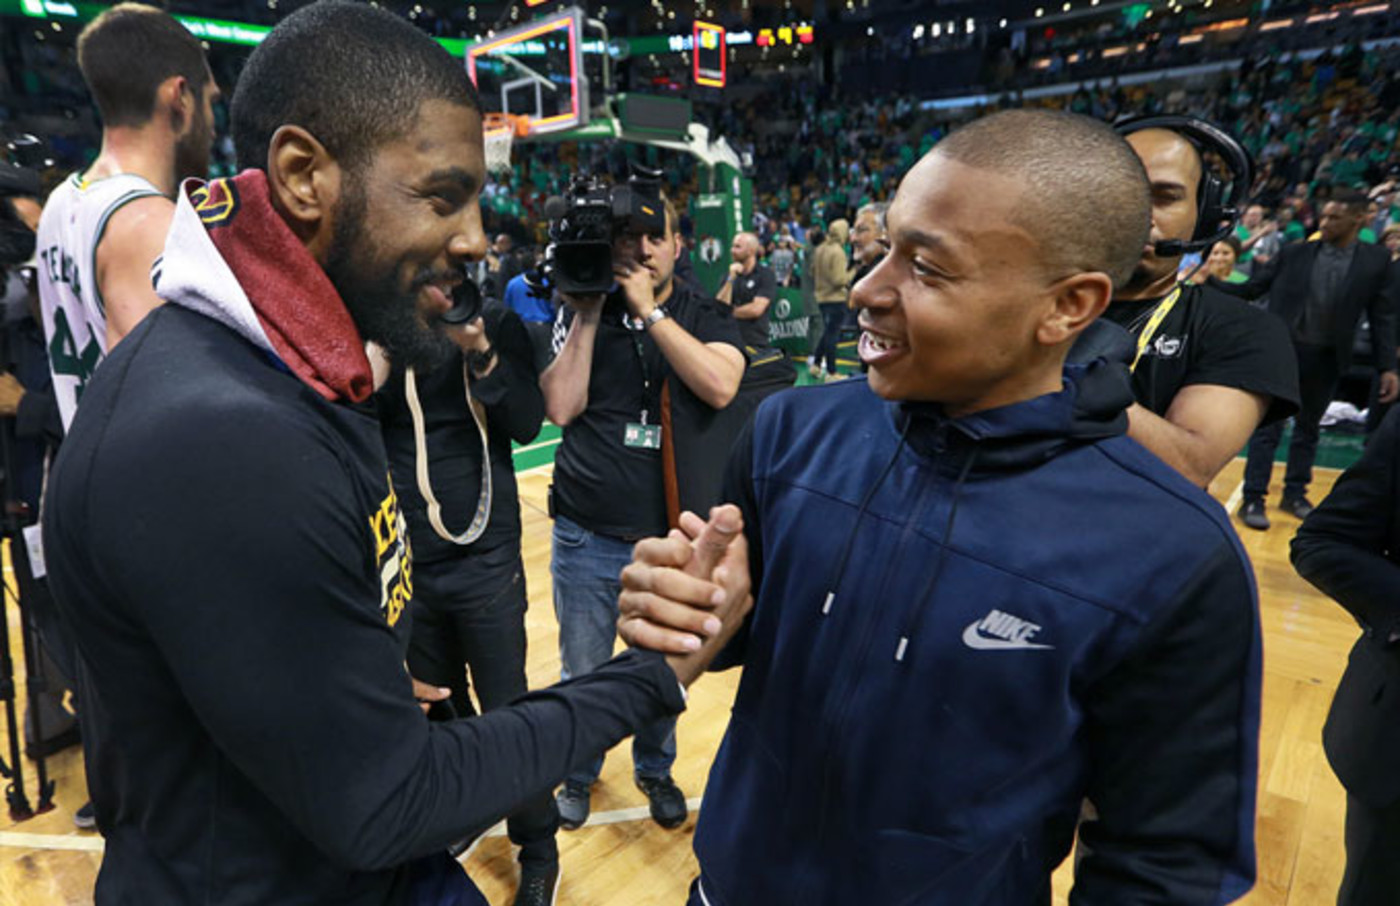 Kyrie Irving and Isaiah Thomas exchange a handshake.